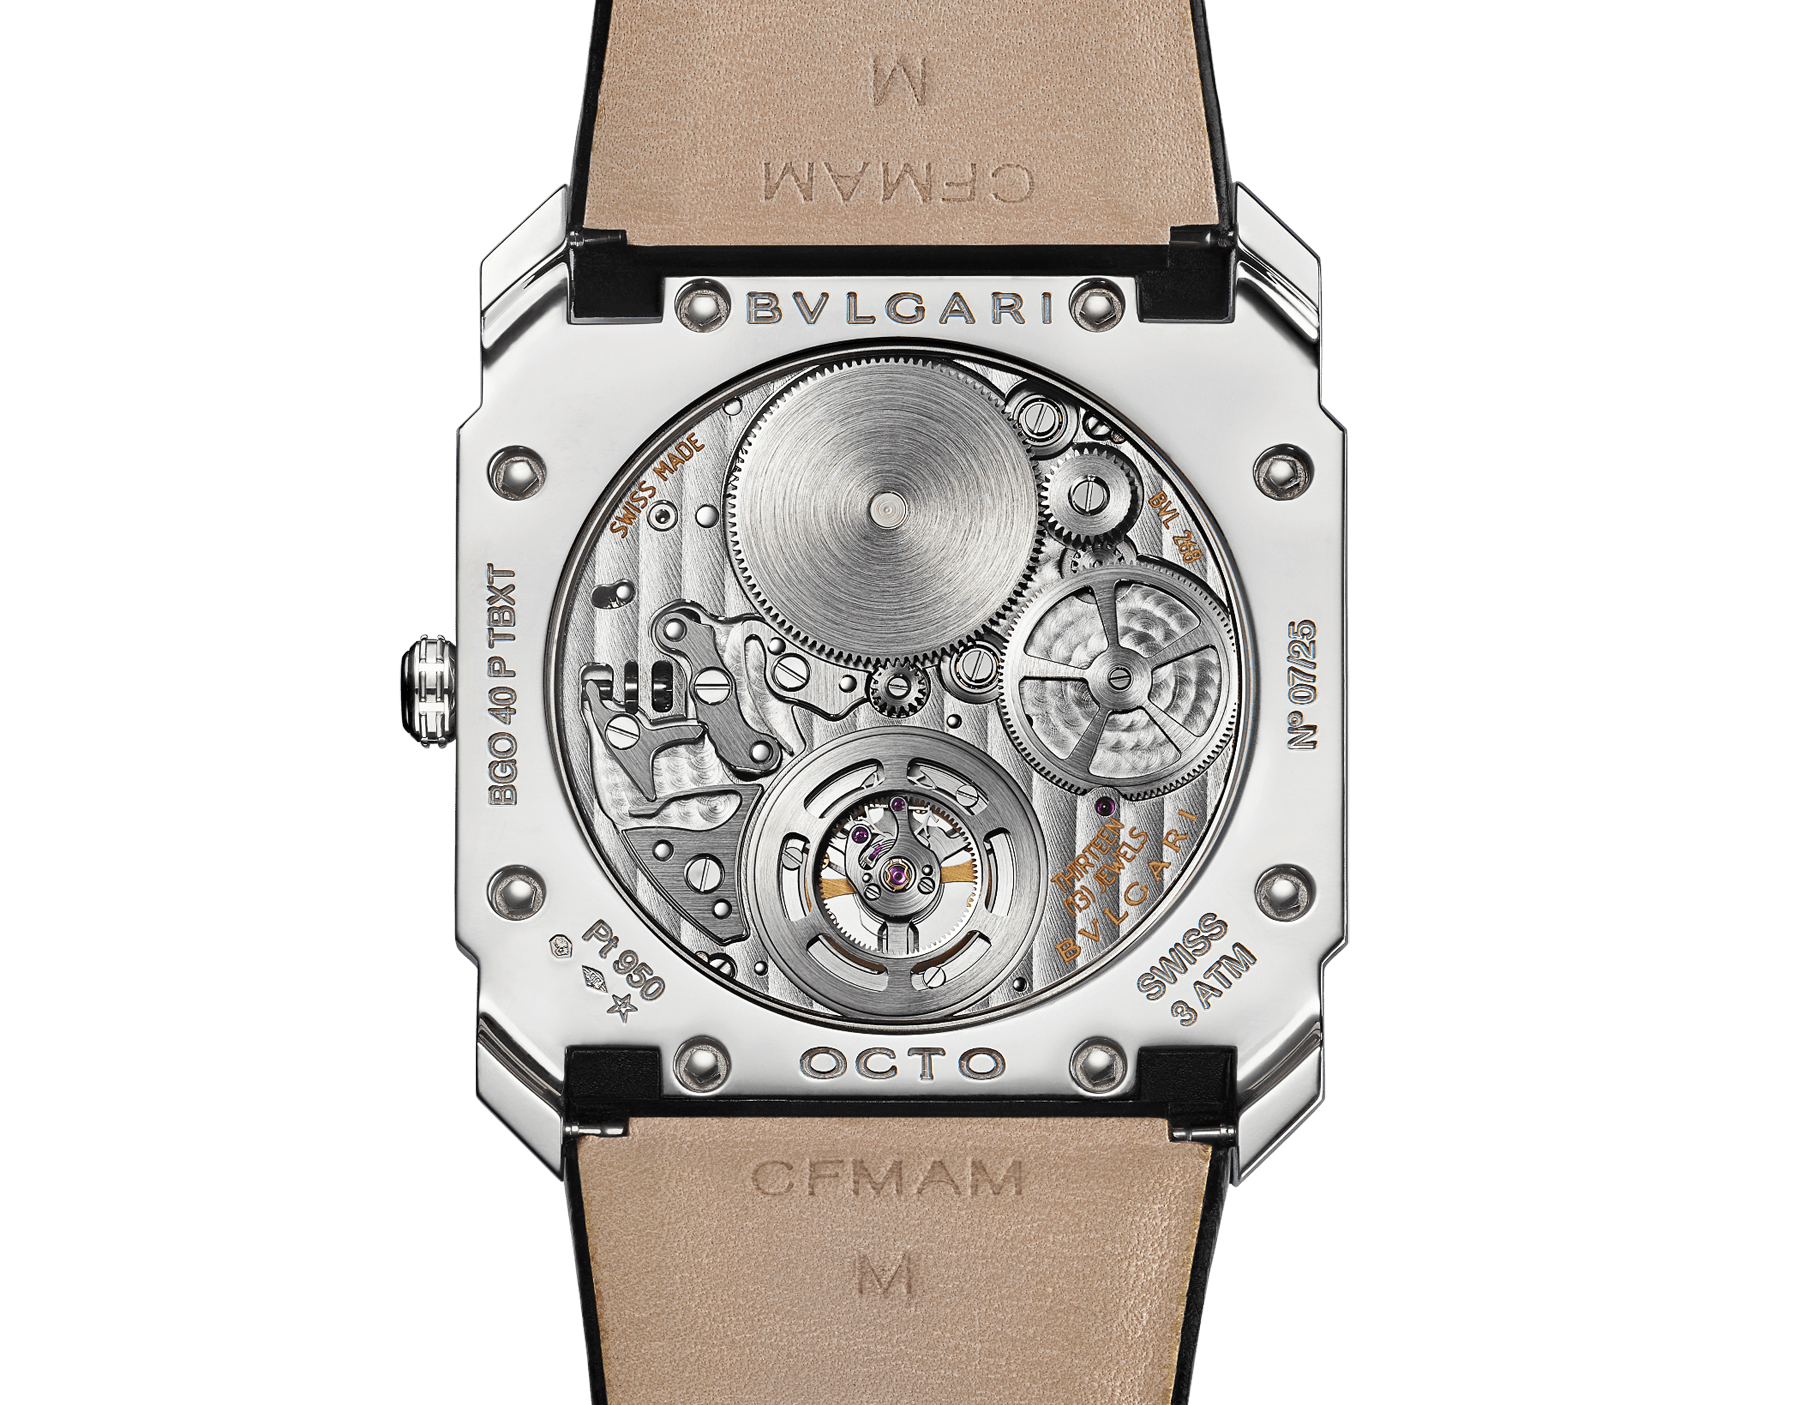 Octo Finissimo Tourbillon Limited Edition watch with extra thin mechanical manufacture movement and manual winding, platinum case, bezel set with baguette-cut diamonds, black lacquered dial with tourbillon see-through opening and black alligator bracelet. 102401 image 4